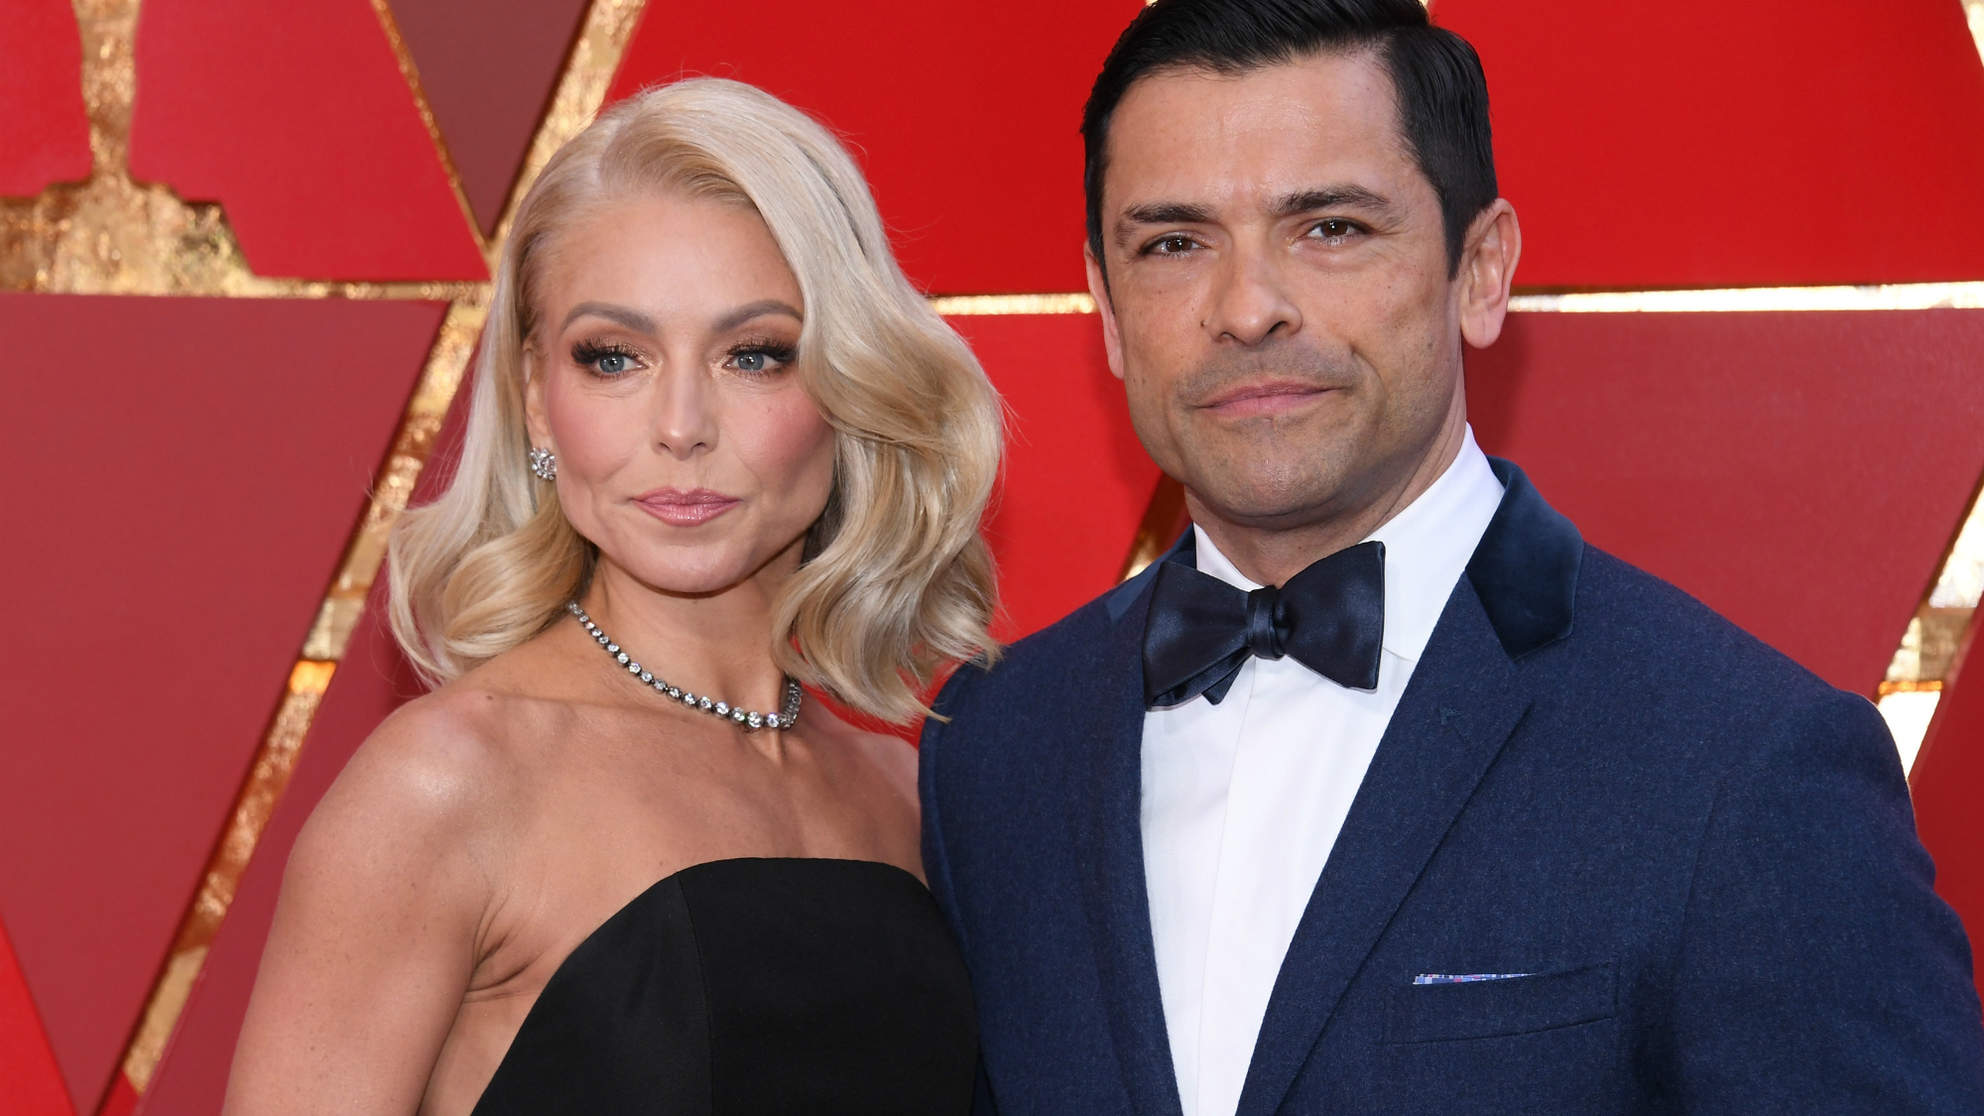 Kelly Ripa and Mark Consuelos Celebrate Their Anniversary with Acroyoga in the Bahamas